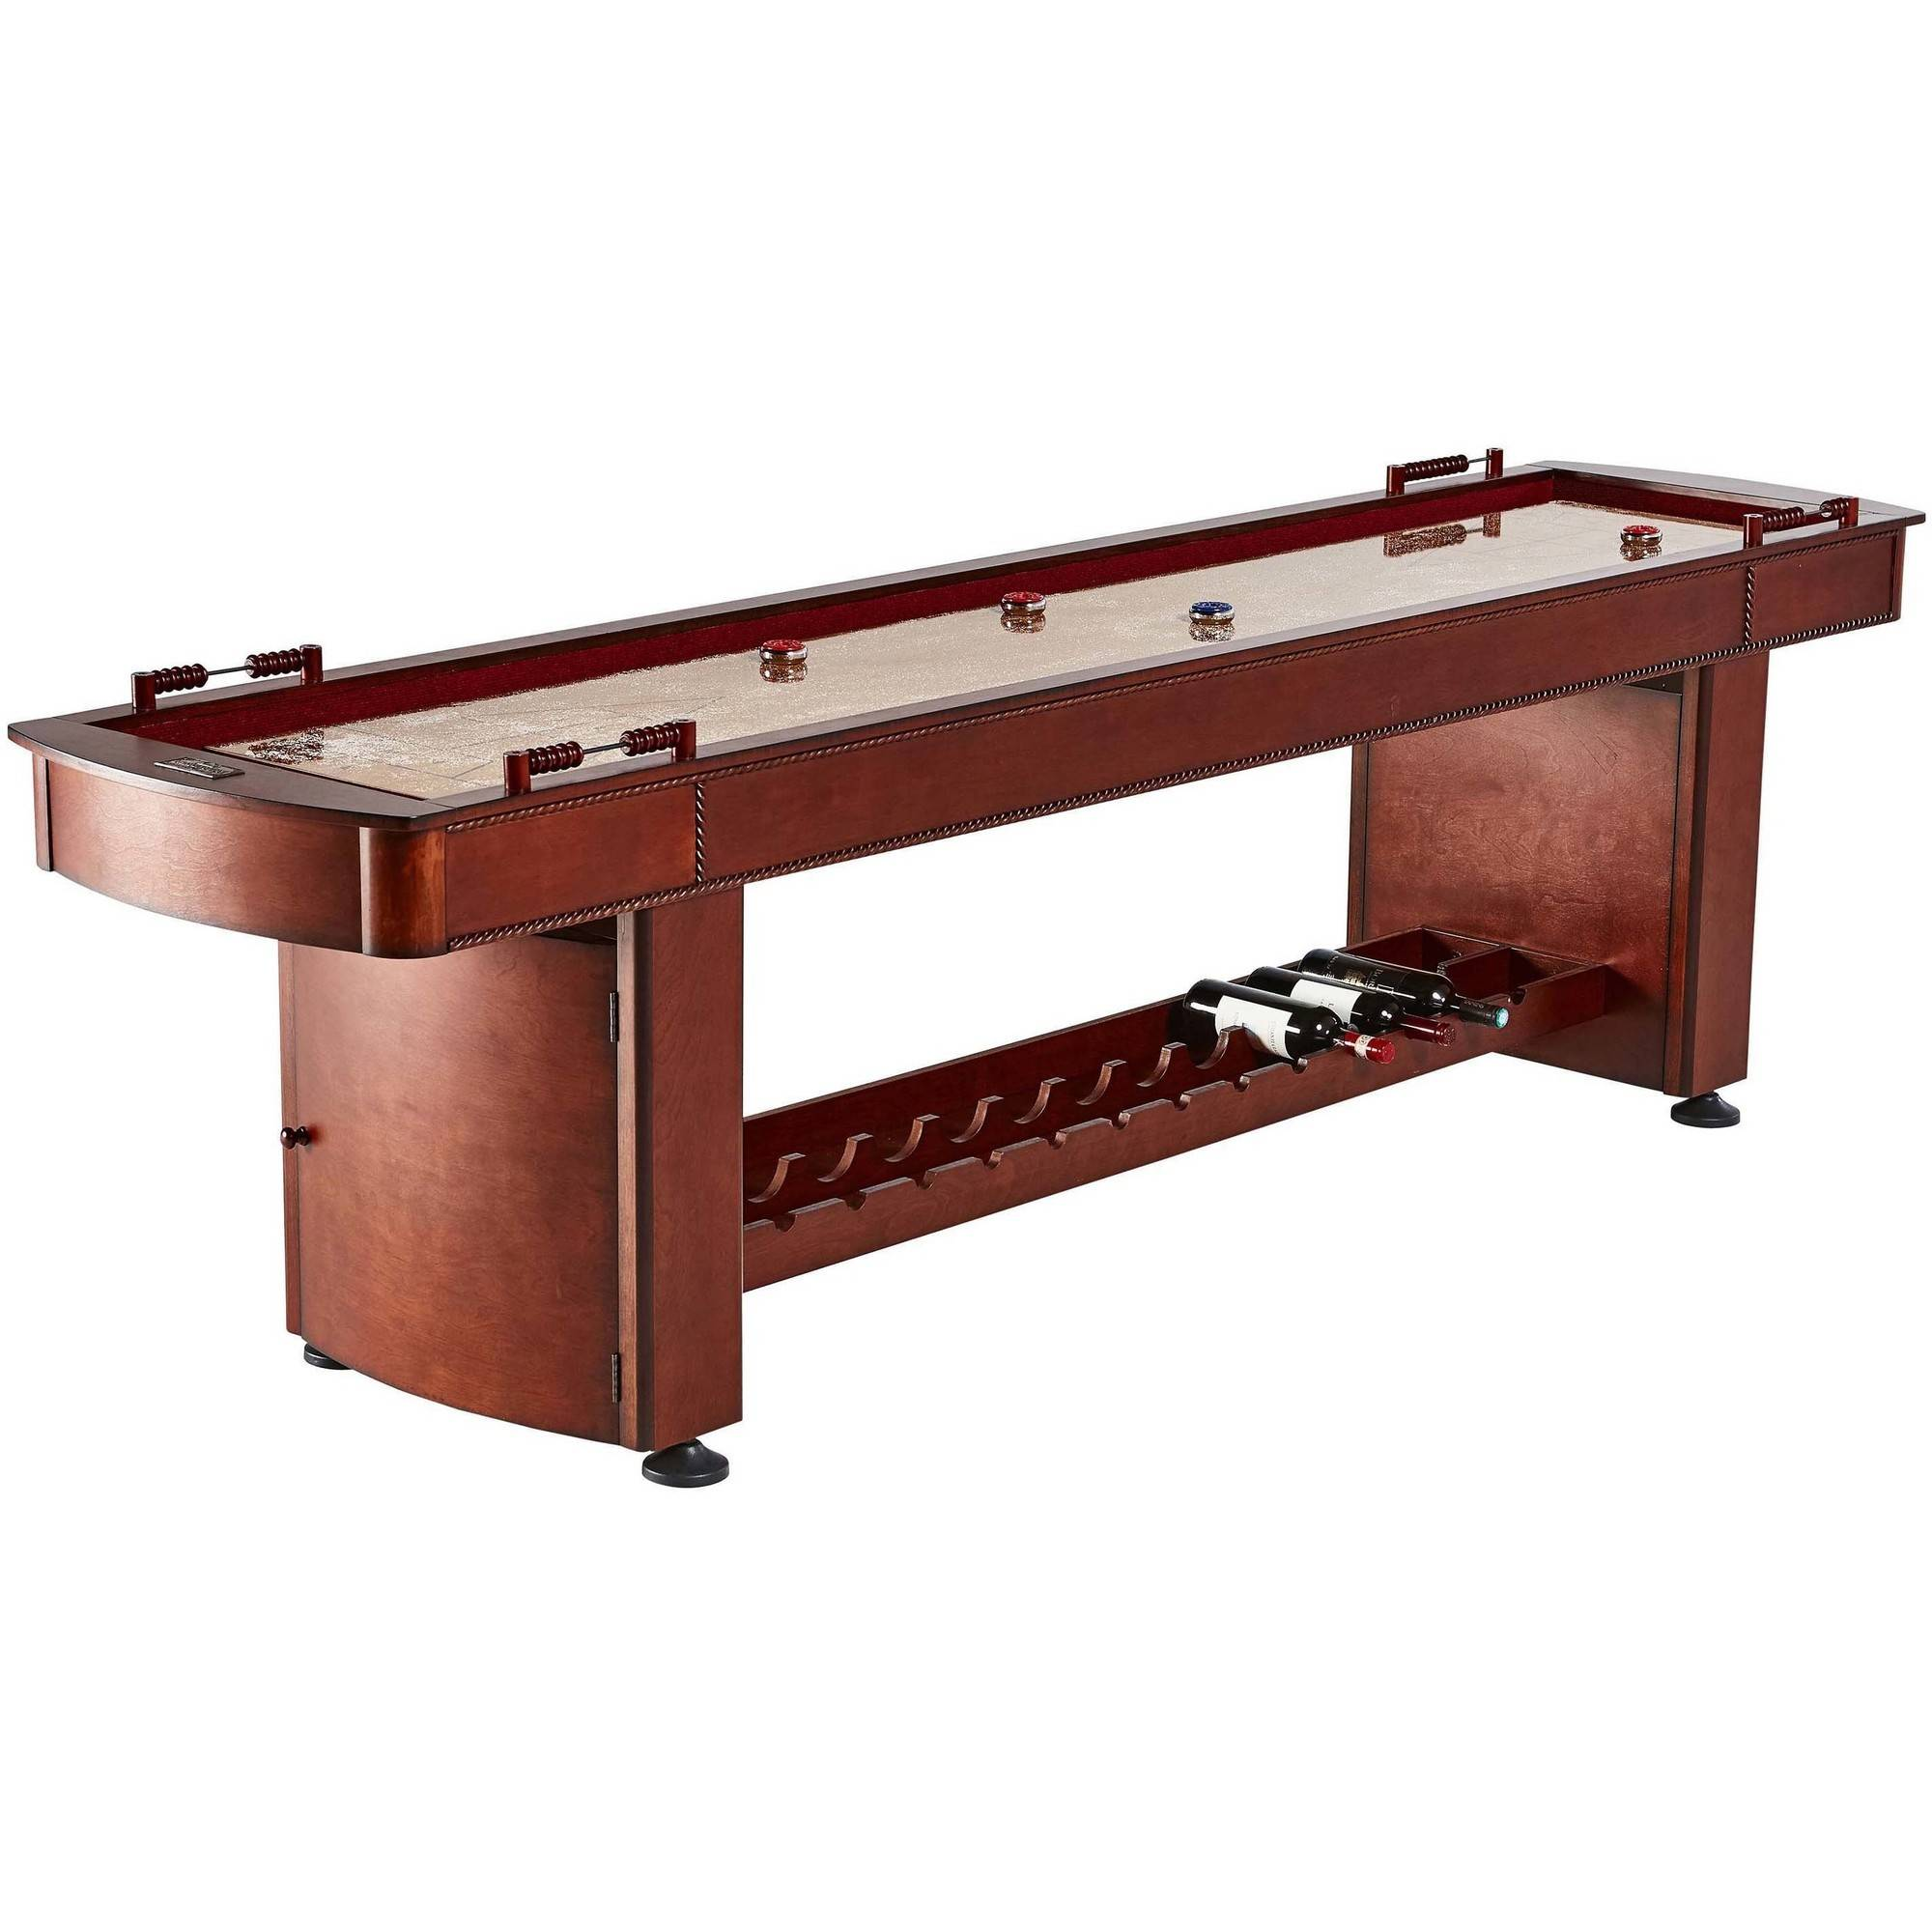 Product Image Barrington 9 Ft. Classic Wood Shuffleboard Table With Wine  Rack, Brown